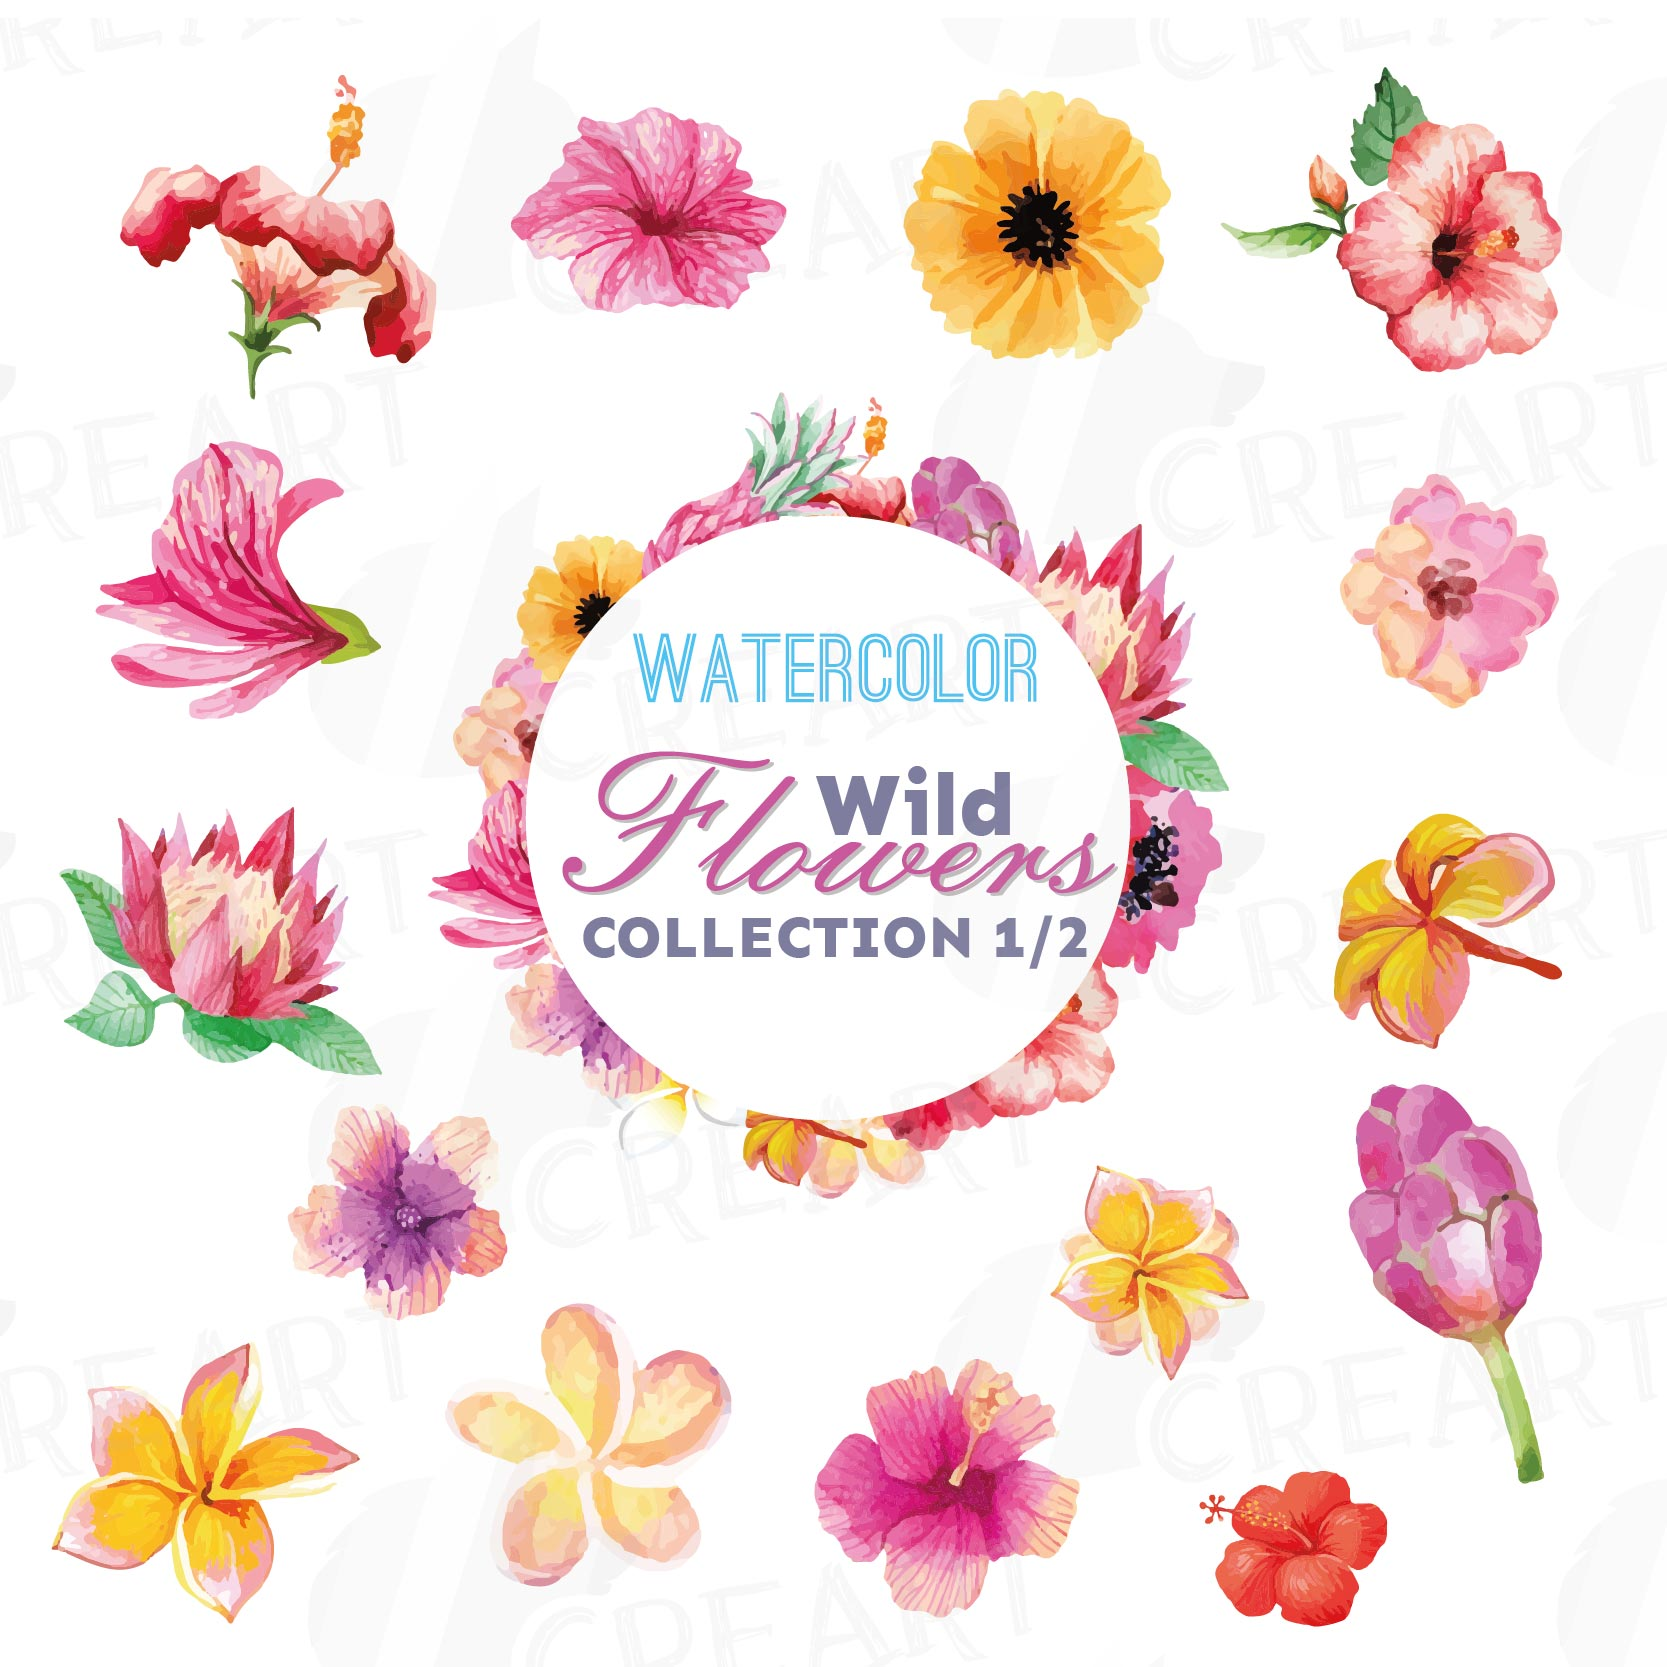 Watercolor wild flowers clip art pack, exotic watercolor flowers valentine clip art. Eps, png, jpg, svg,  vector files included. Part 1/2 example image 1